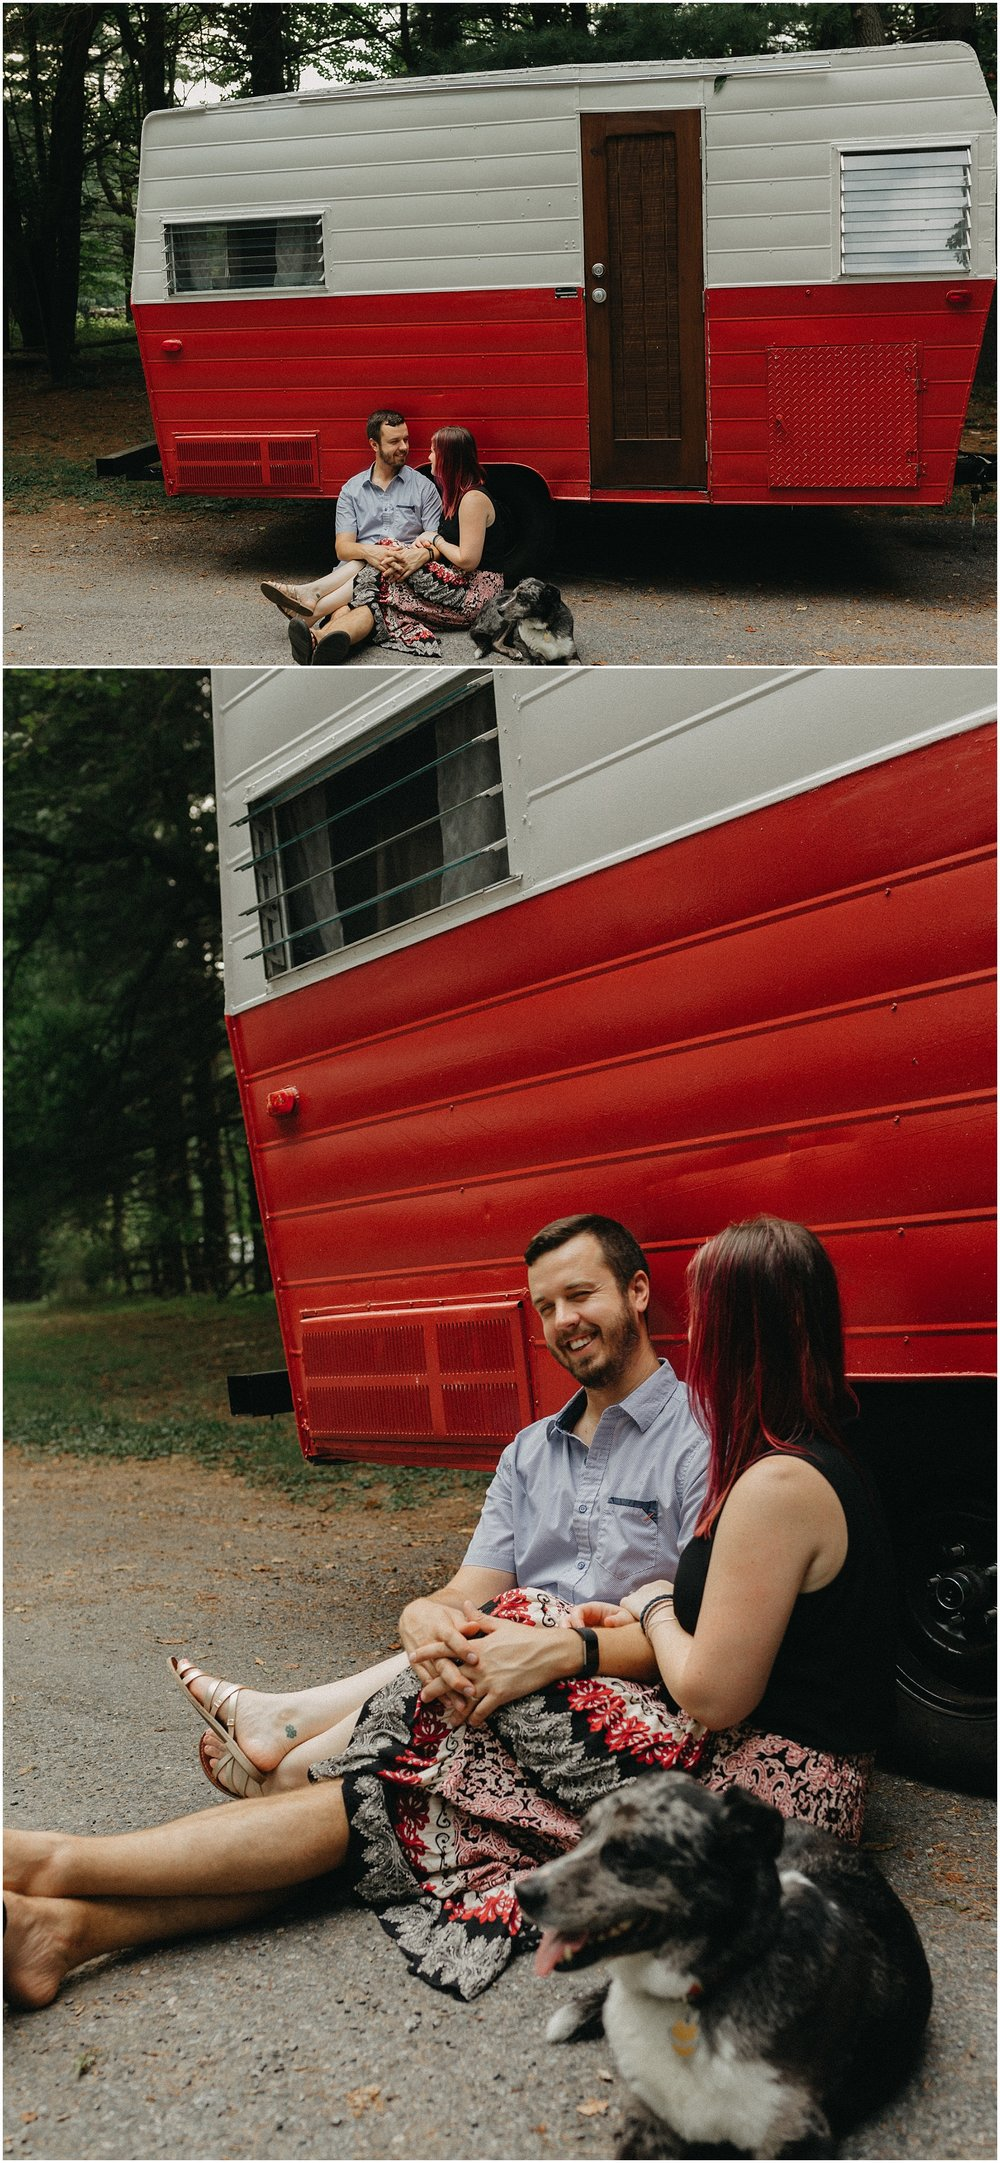 lifestyle-anniversary-engagement-photo session-rv-camping-road trip-vintage trailer-camping-outdoor photos_0242.jpg